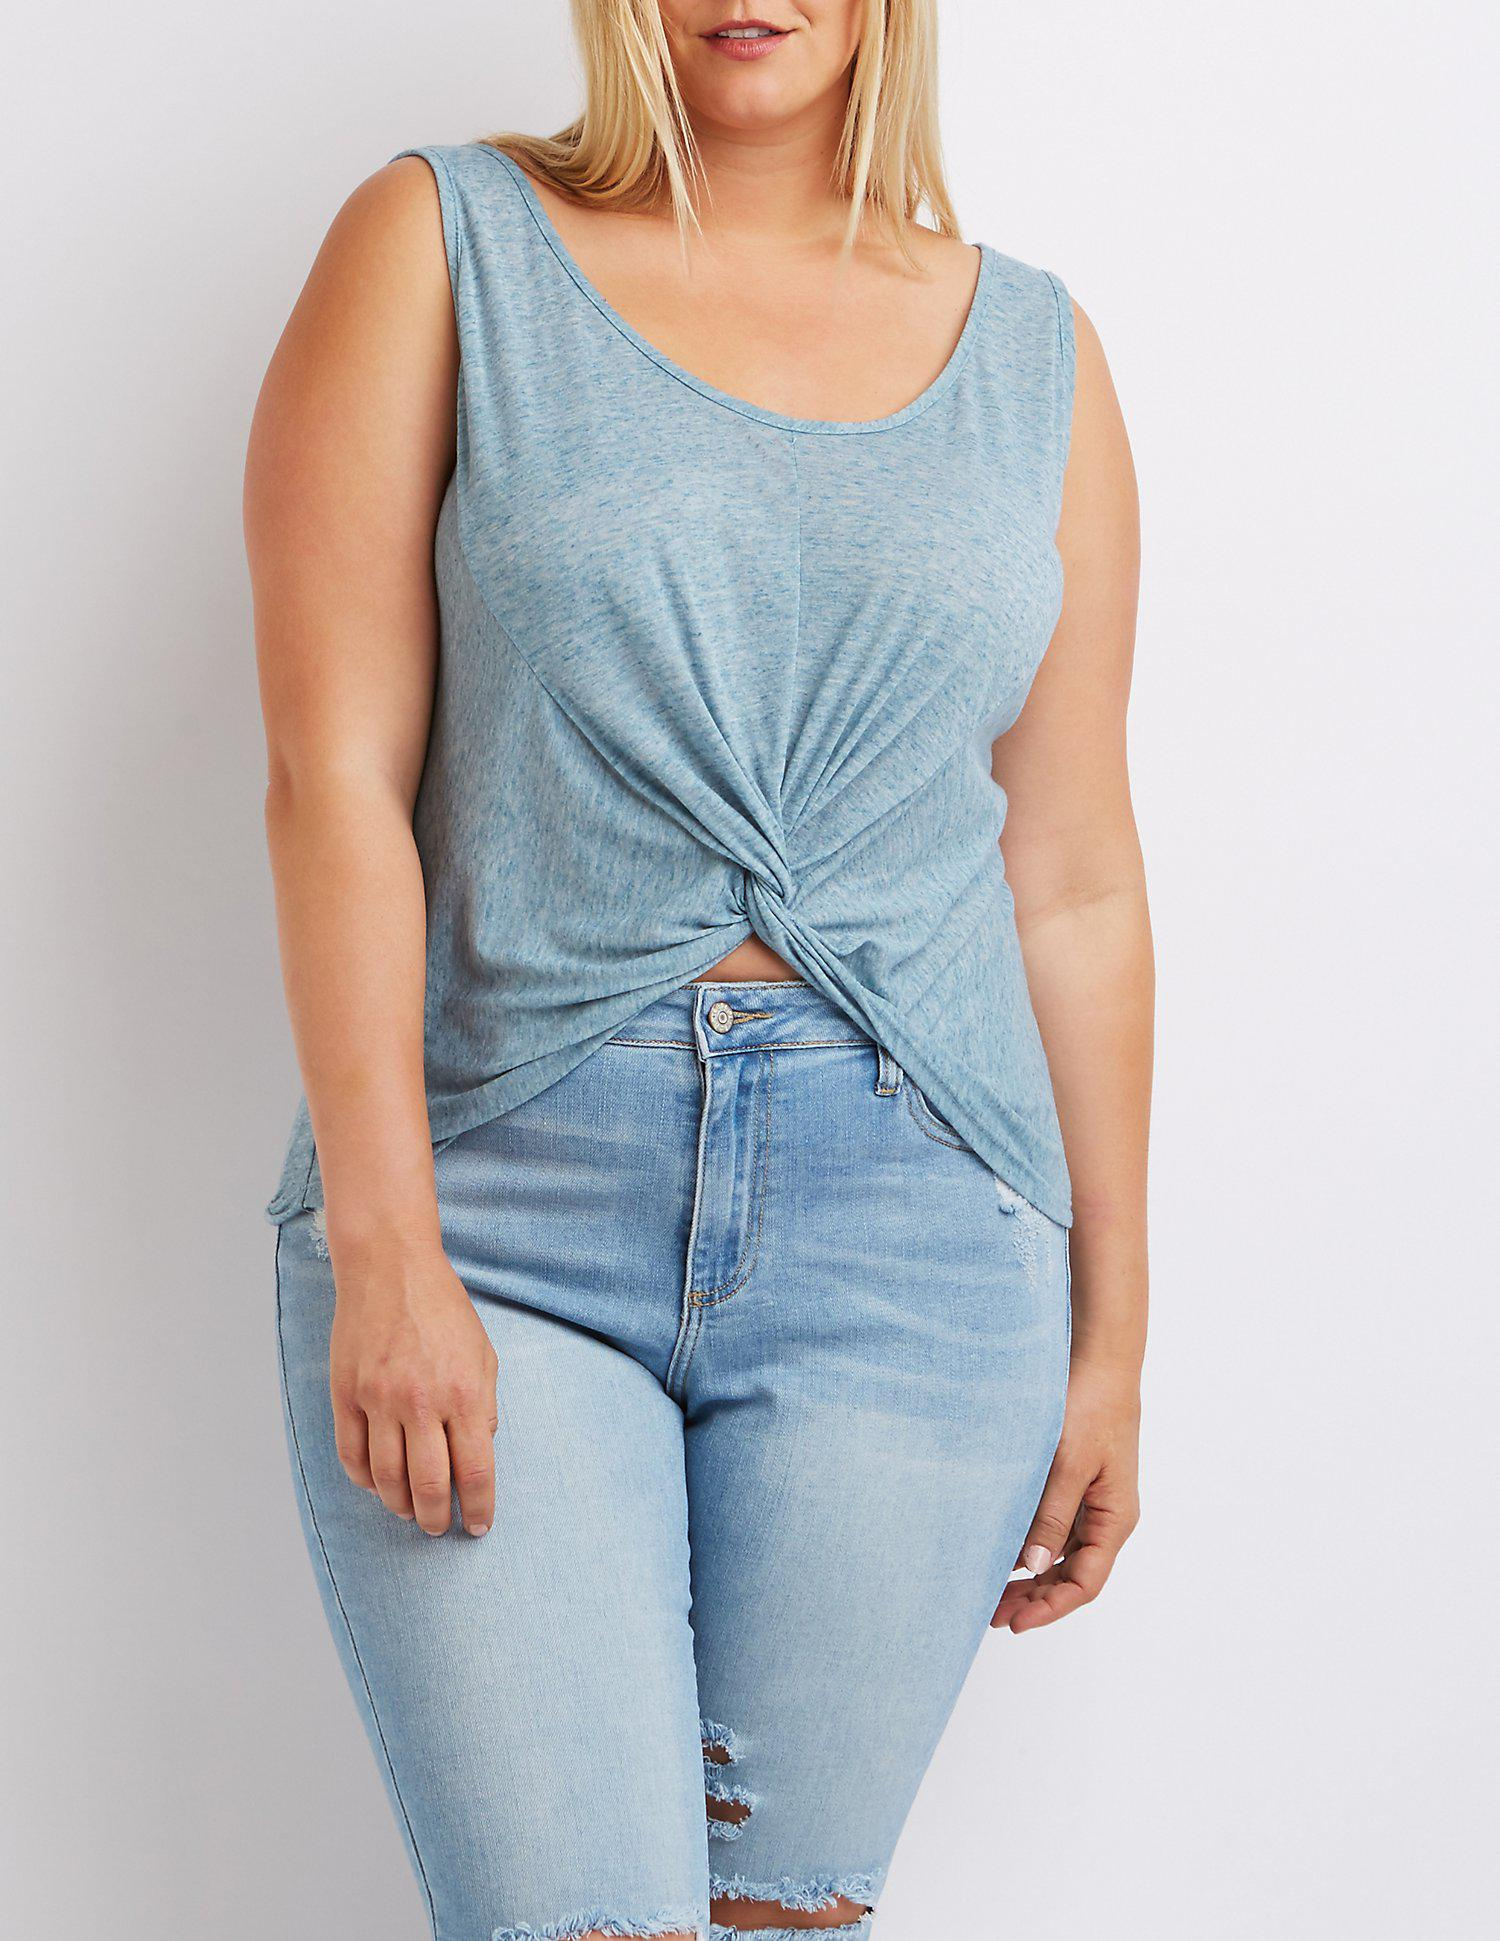 cafa2aff829e2 Lyst - Charlotte Russe Plus Size Knotted Tank Top in Blue